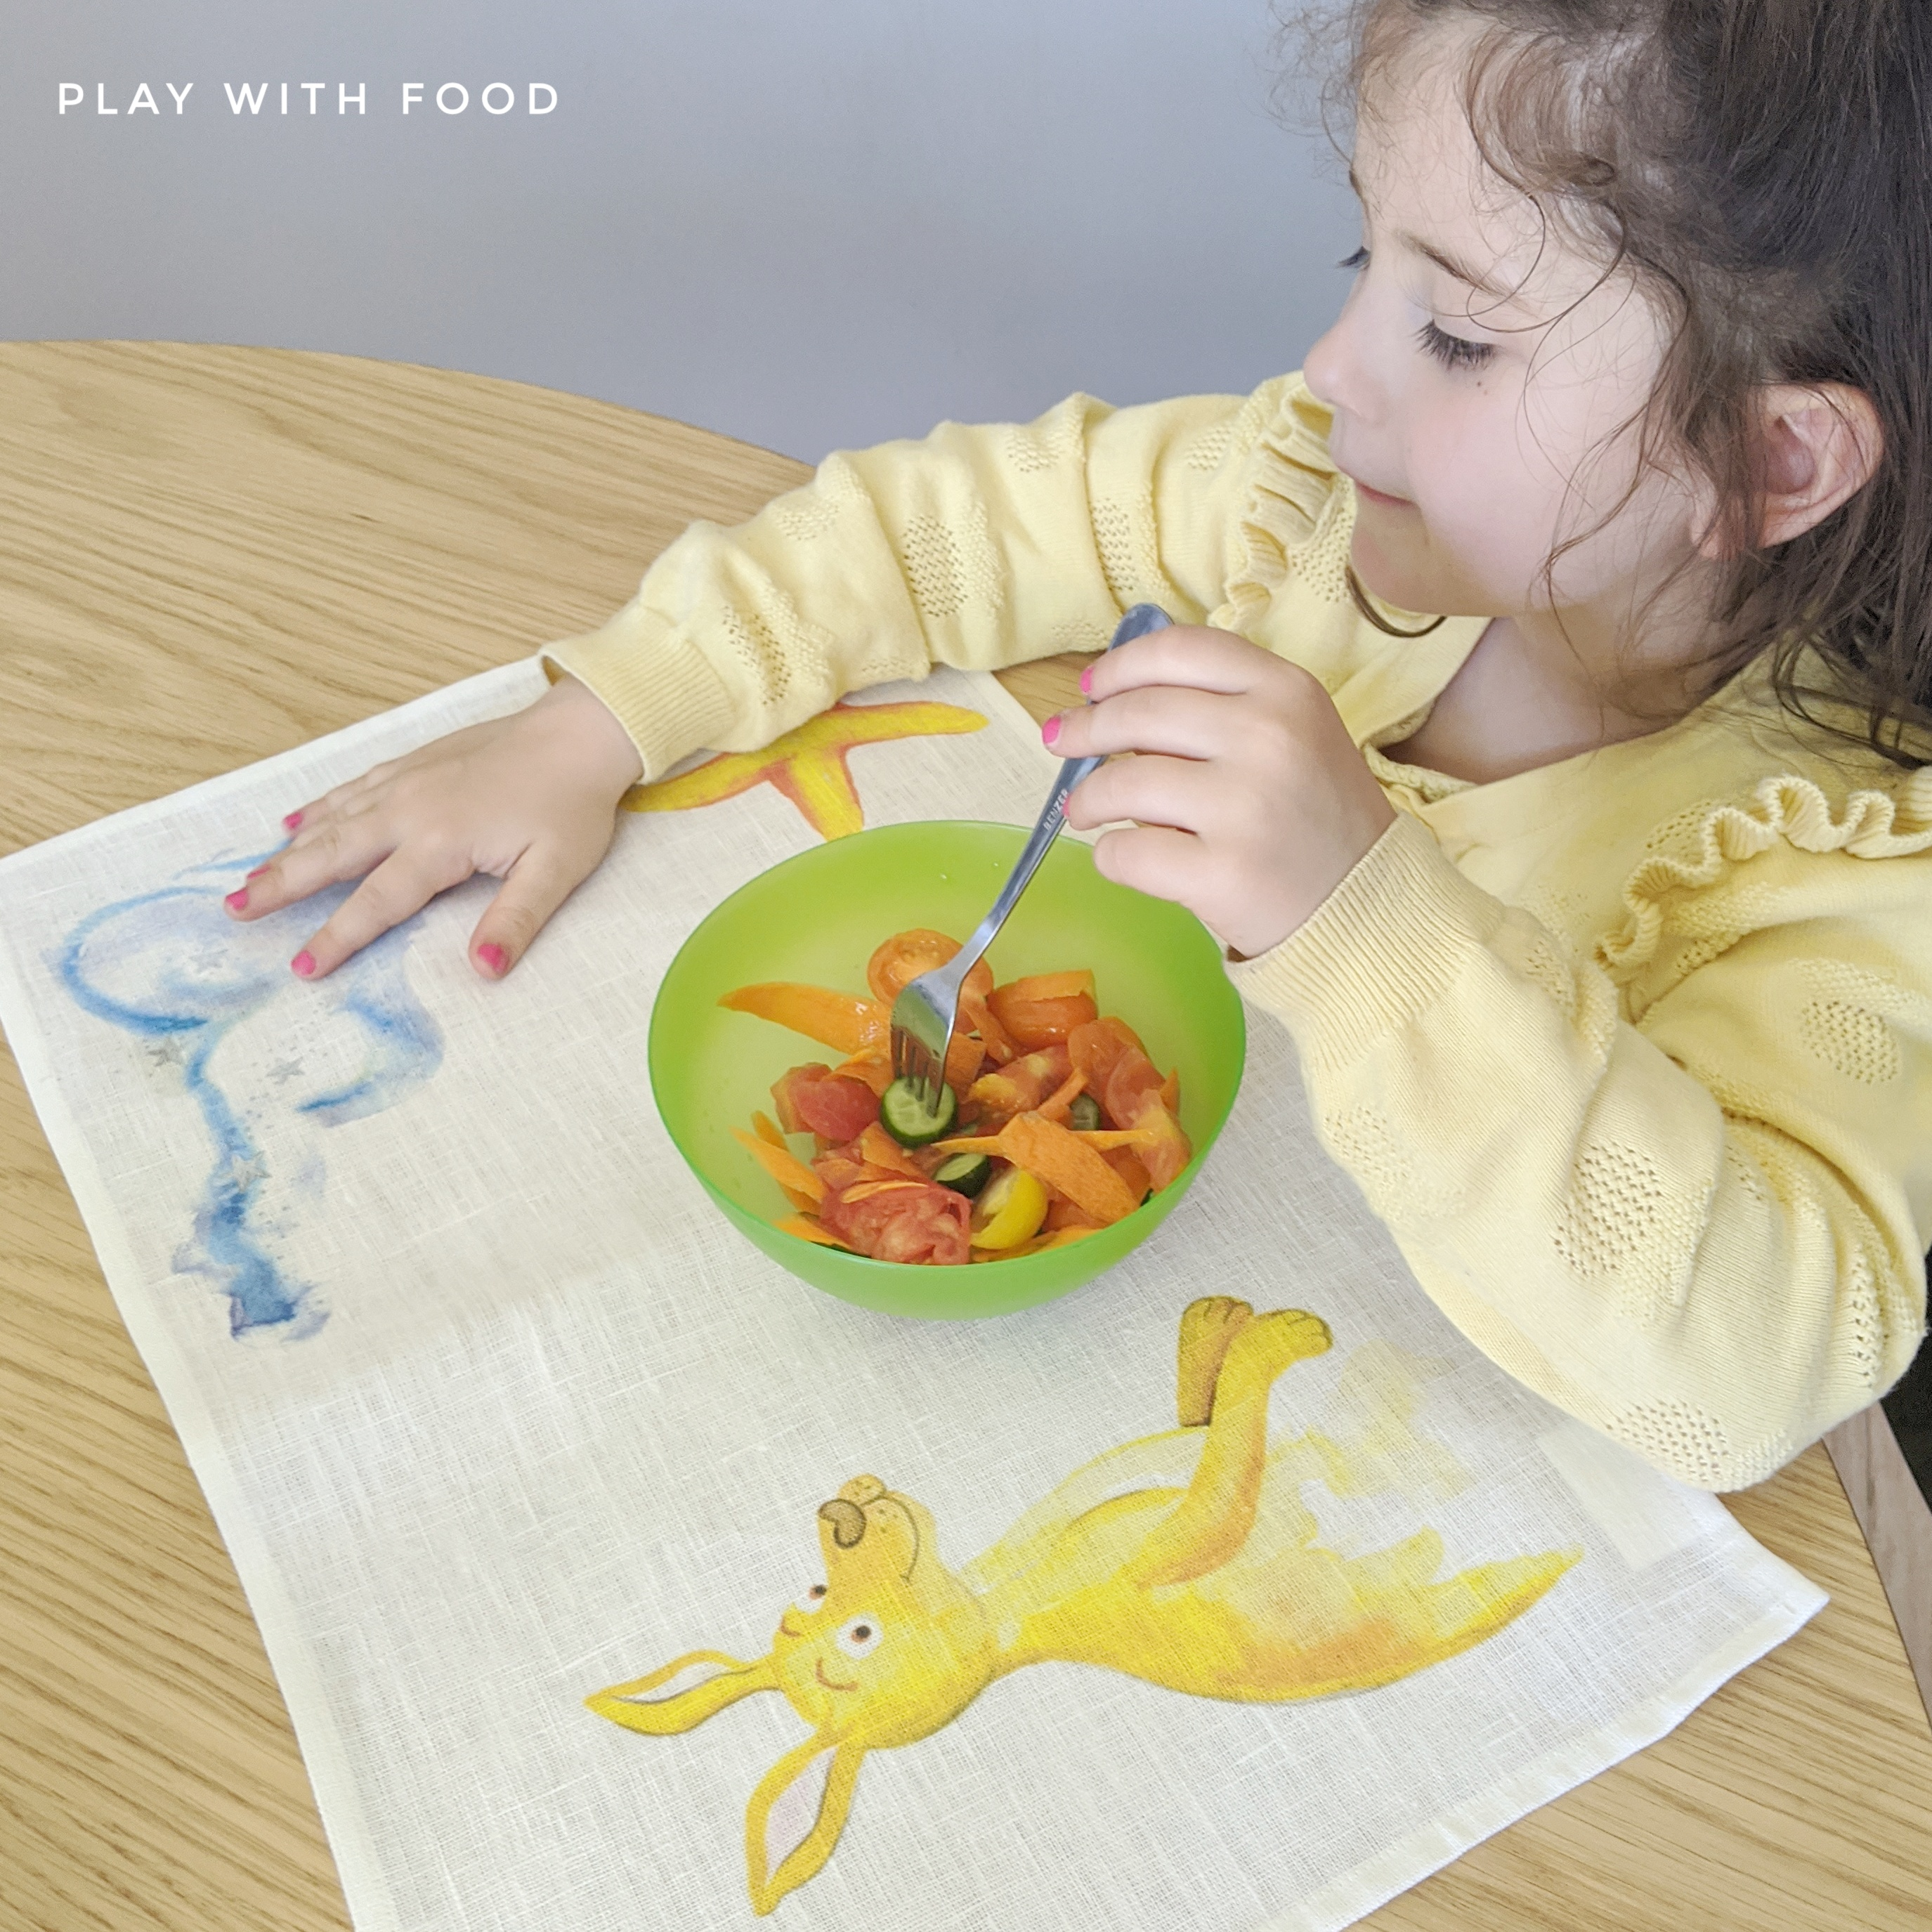 The Peaceful Mealtime Placemat and Video to Increase Your Child's Ability to Try New Foods